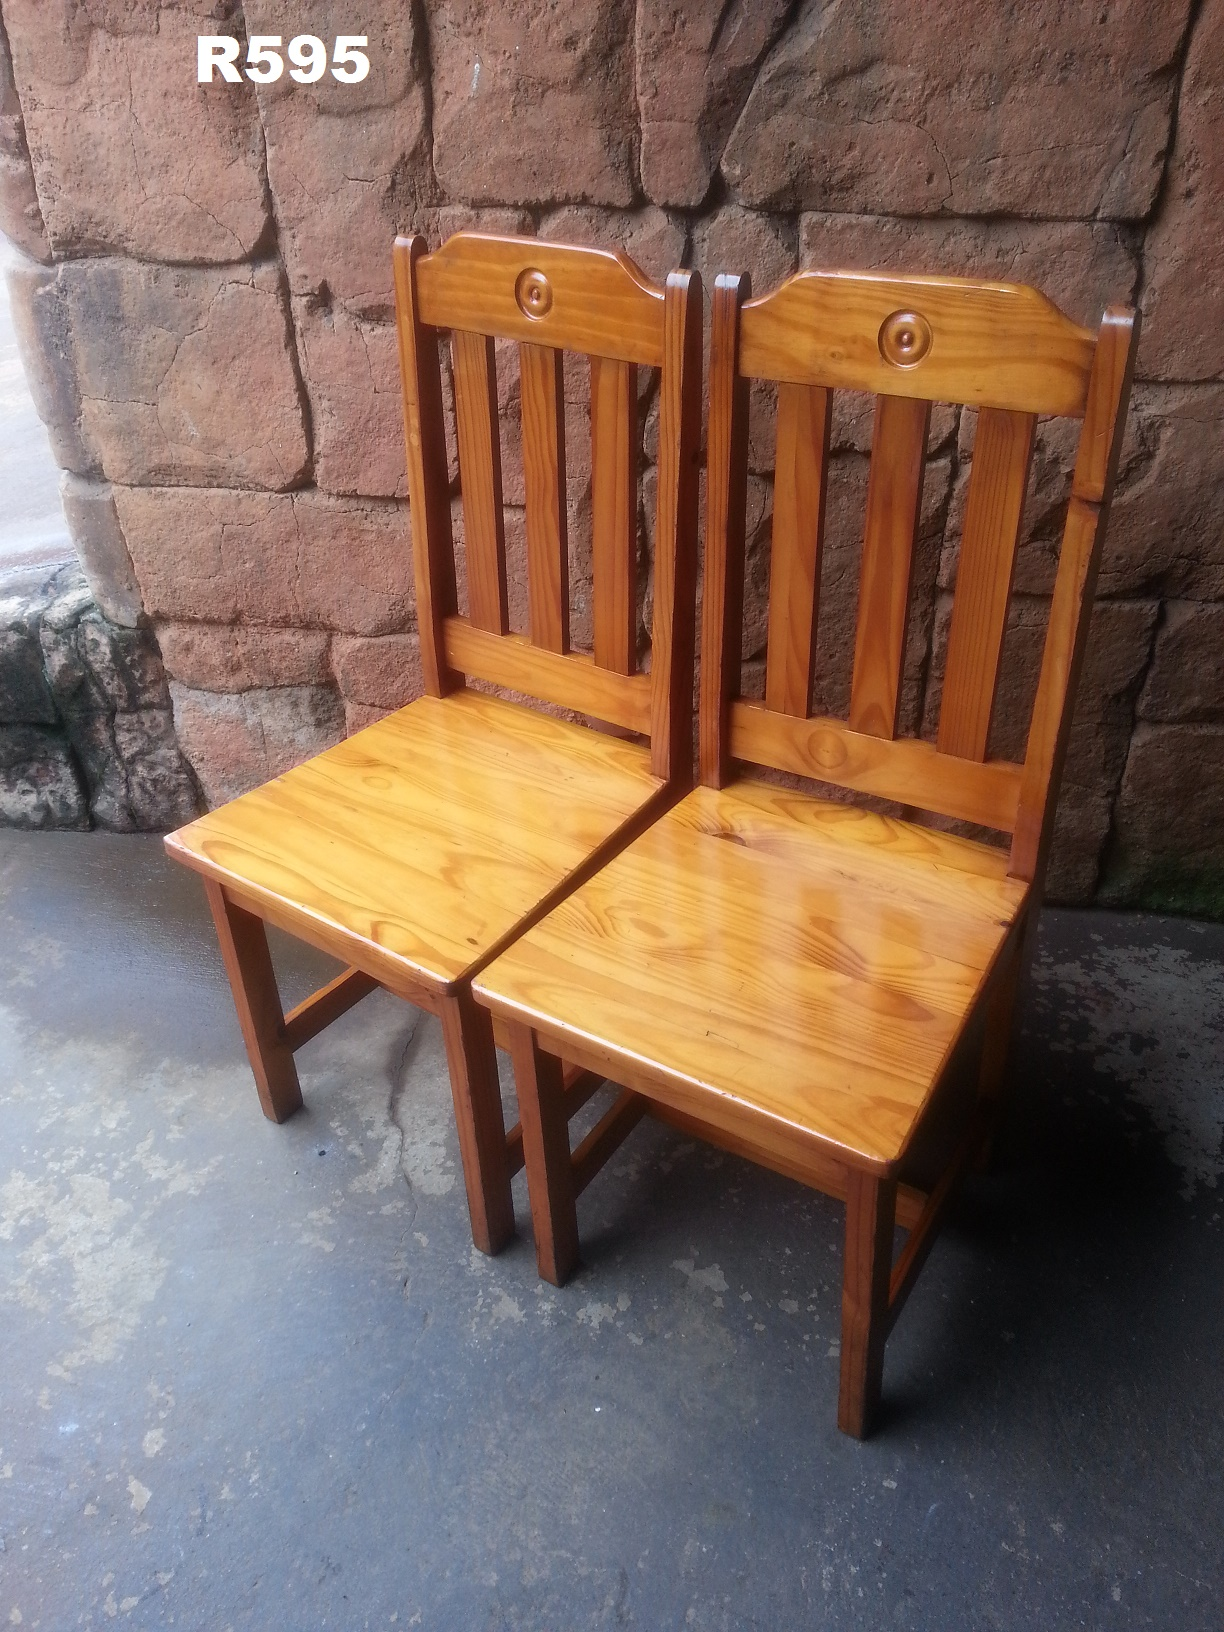 2 Pine Chairs & 2 Pine Chairs | Junk Mail